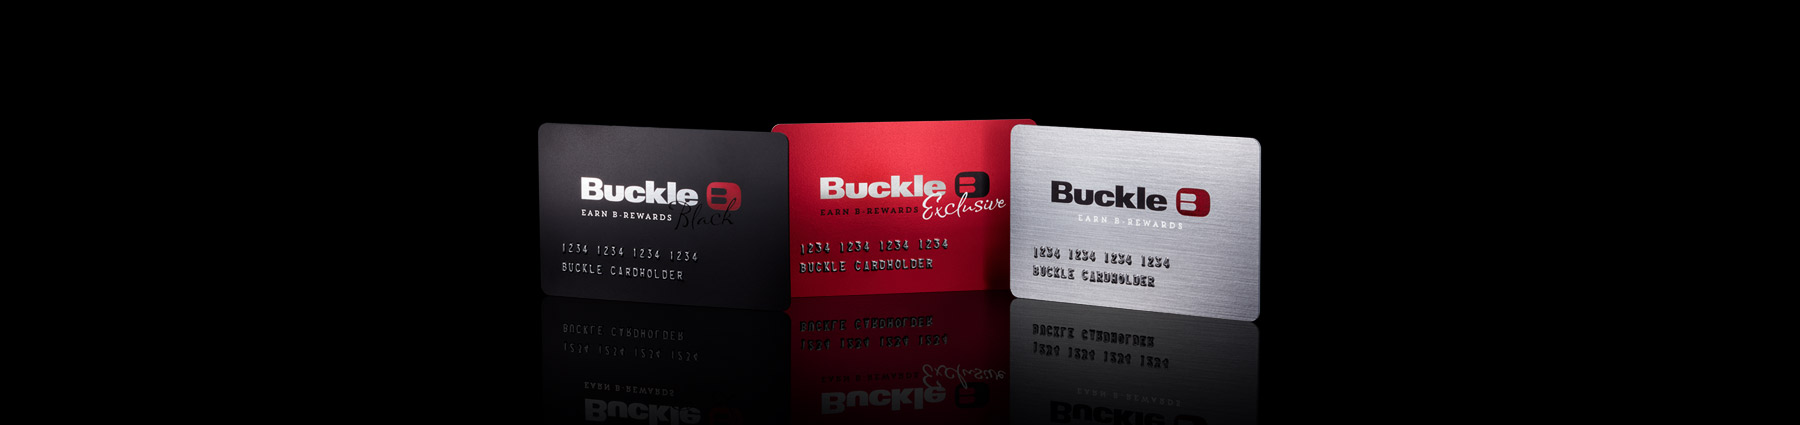 Buckle Credit Card Banner